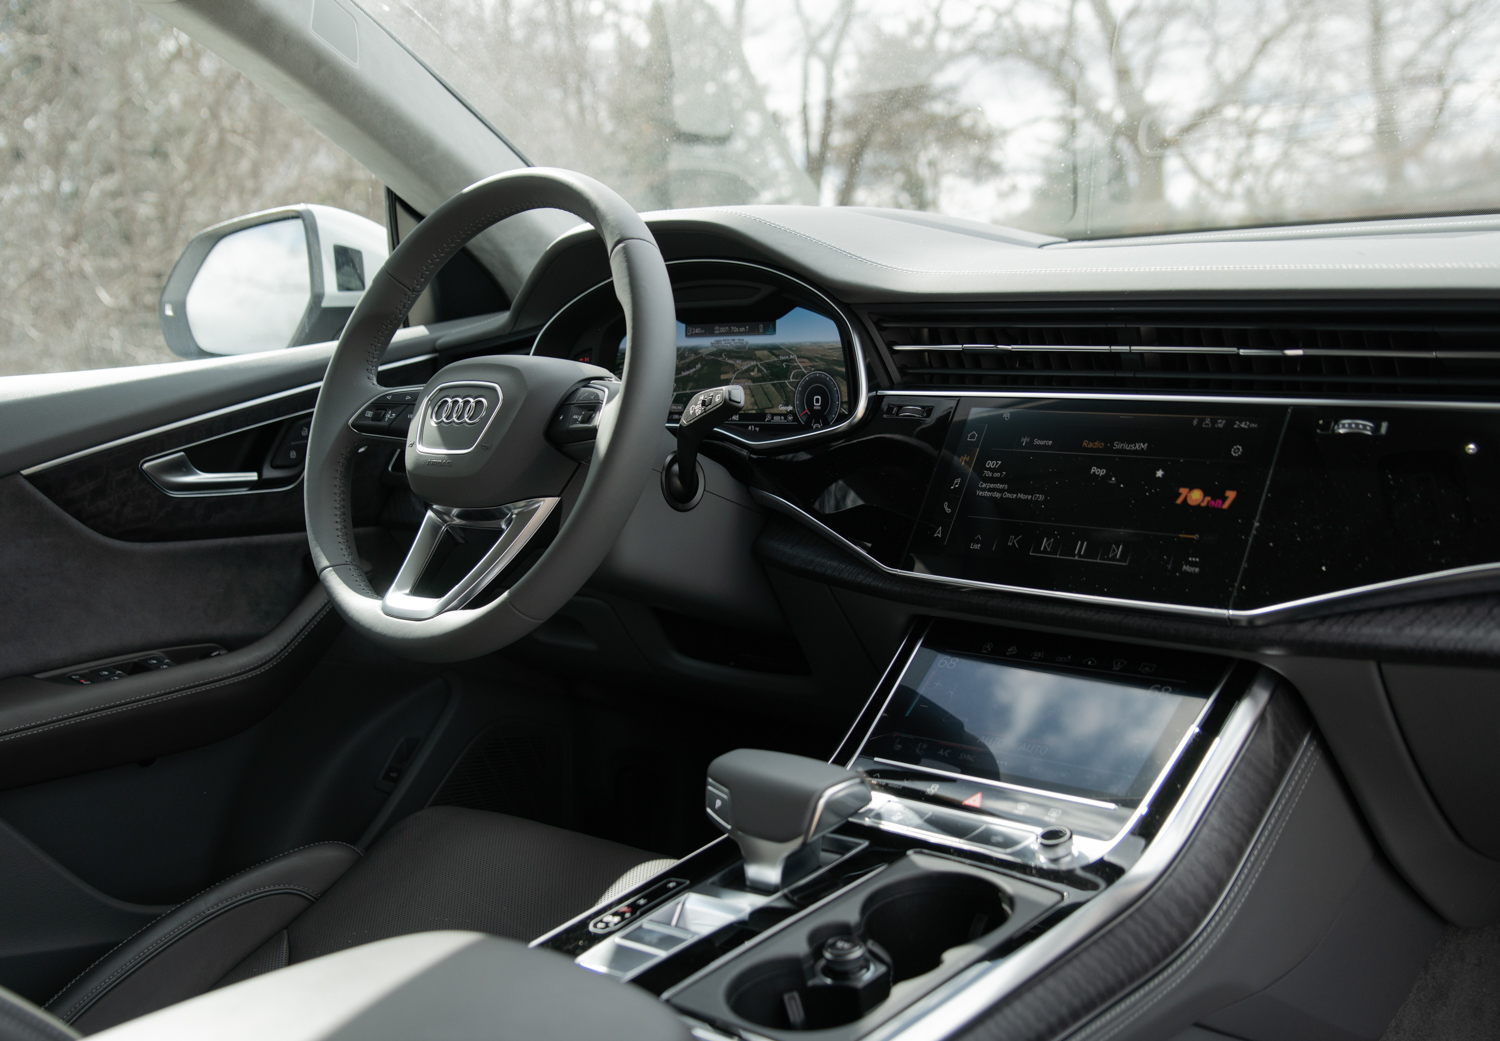 2020 Audi Q8 dash layout